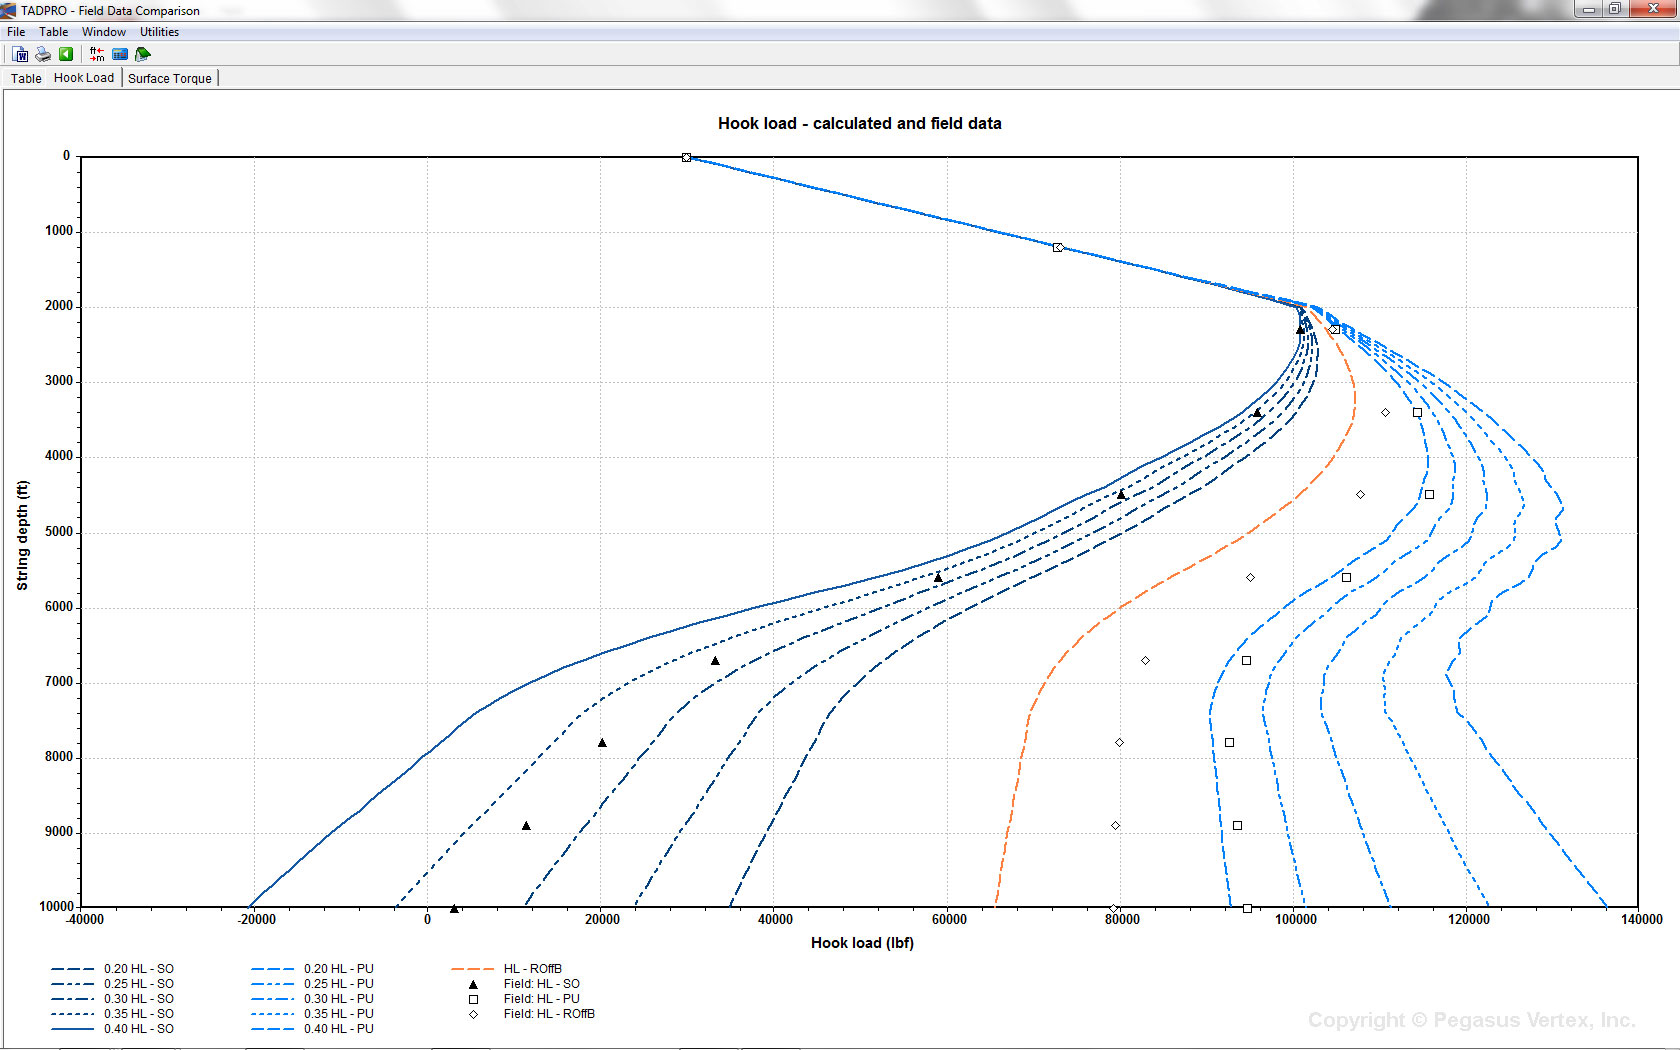 Hook Load Prediction Using TADPRO (torque and drag model).